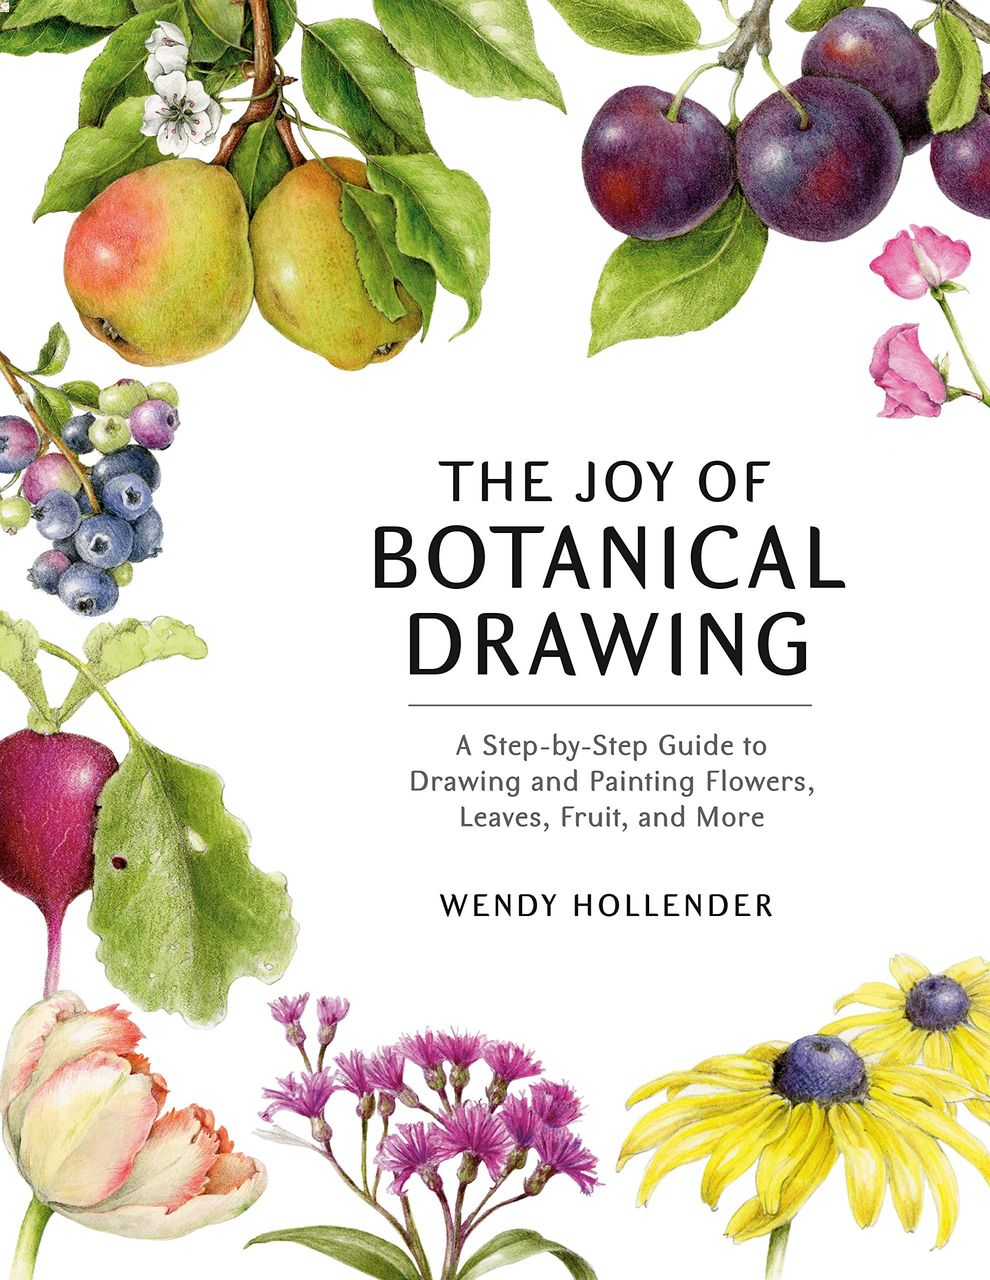 The Joy of Botanical Drawing by Wendy Hollender